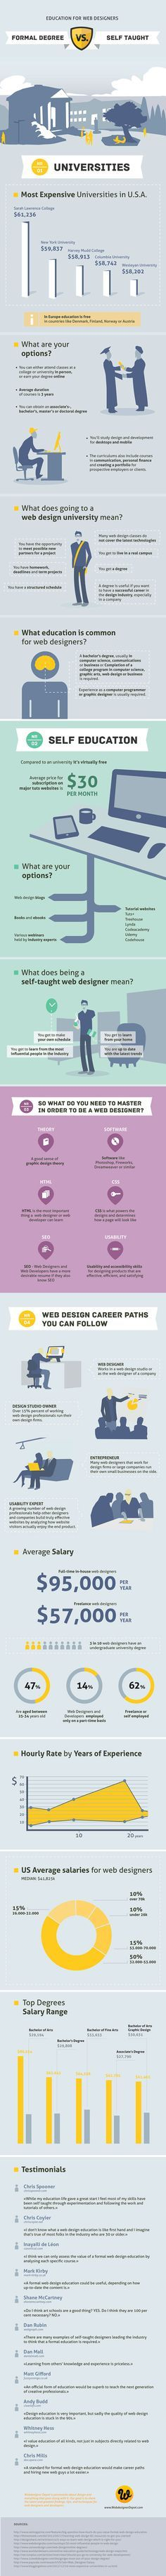 Learning To Code: Get A Degree, Or Just Teach Yourself? [Infographic] – ReadWrite